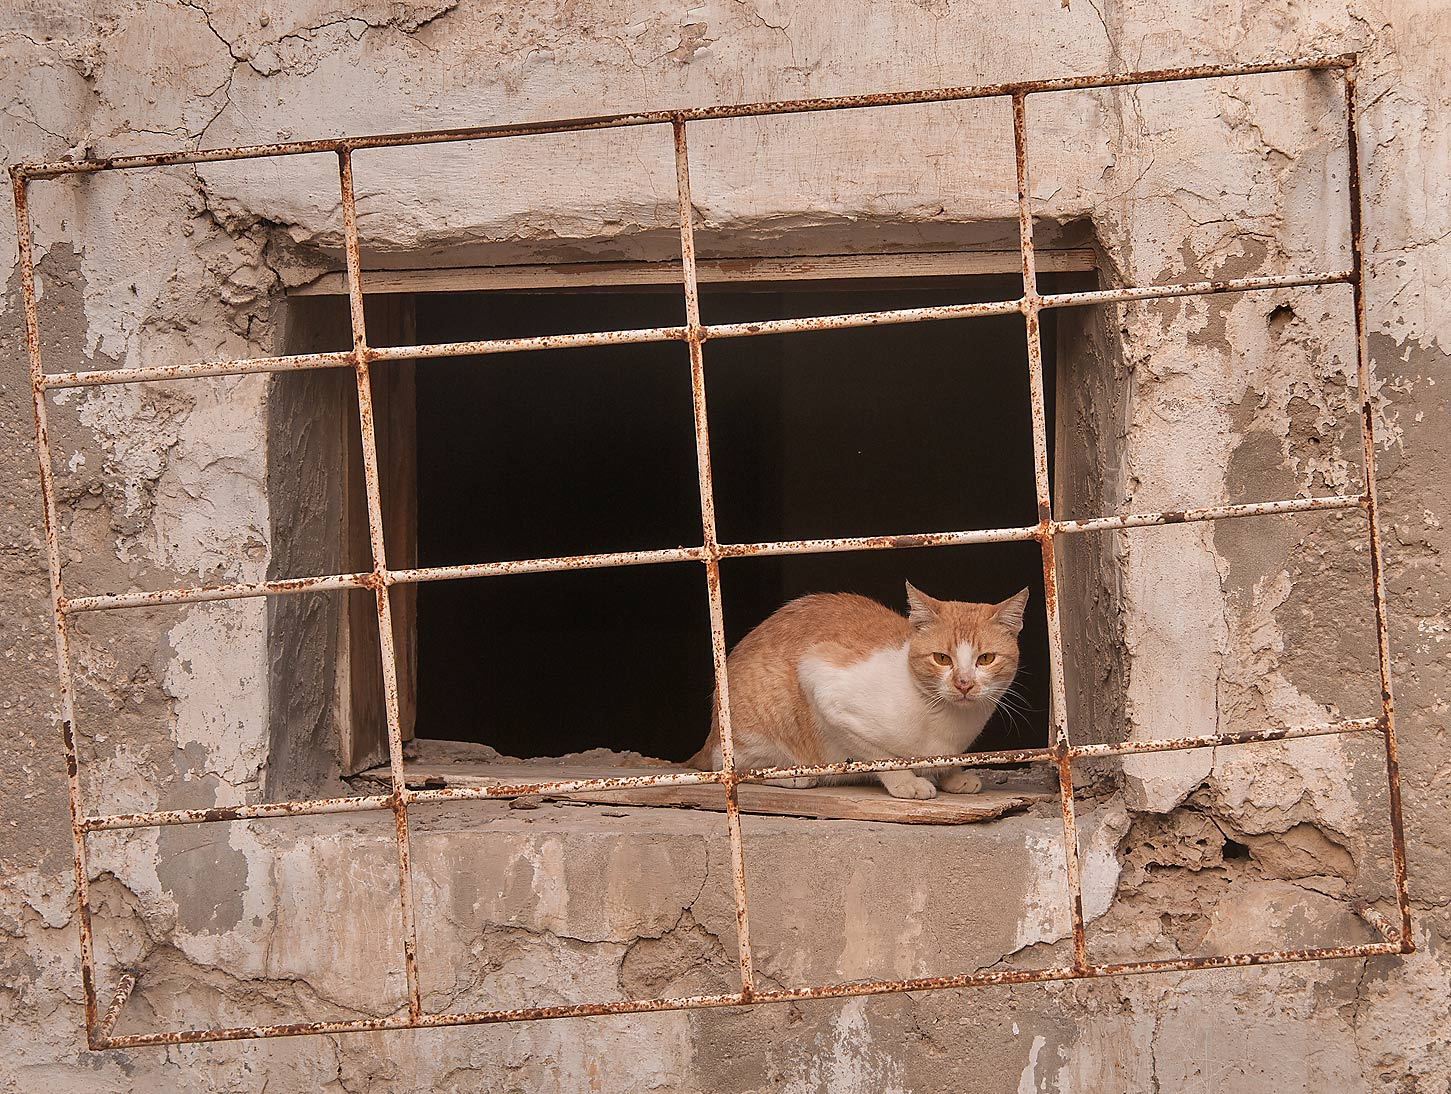 Stray cat sitting in window near Abdullah Bin Thani St., Musheirib area. Doha, Qatar